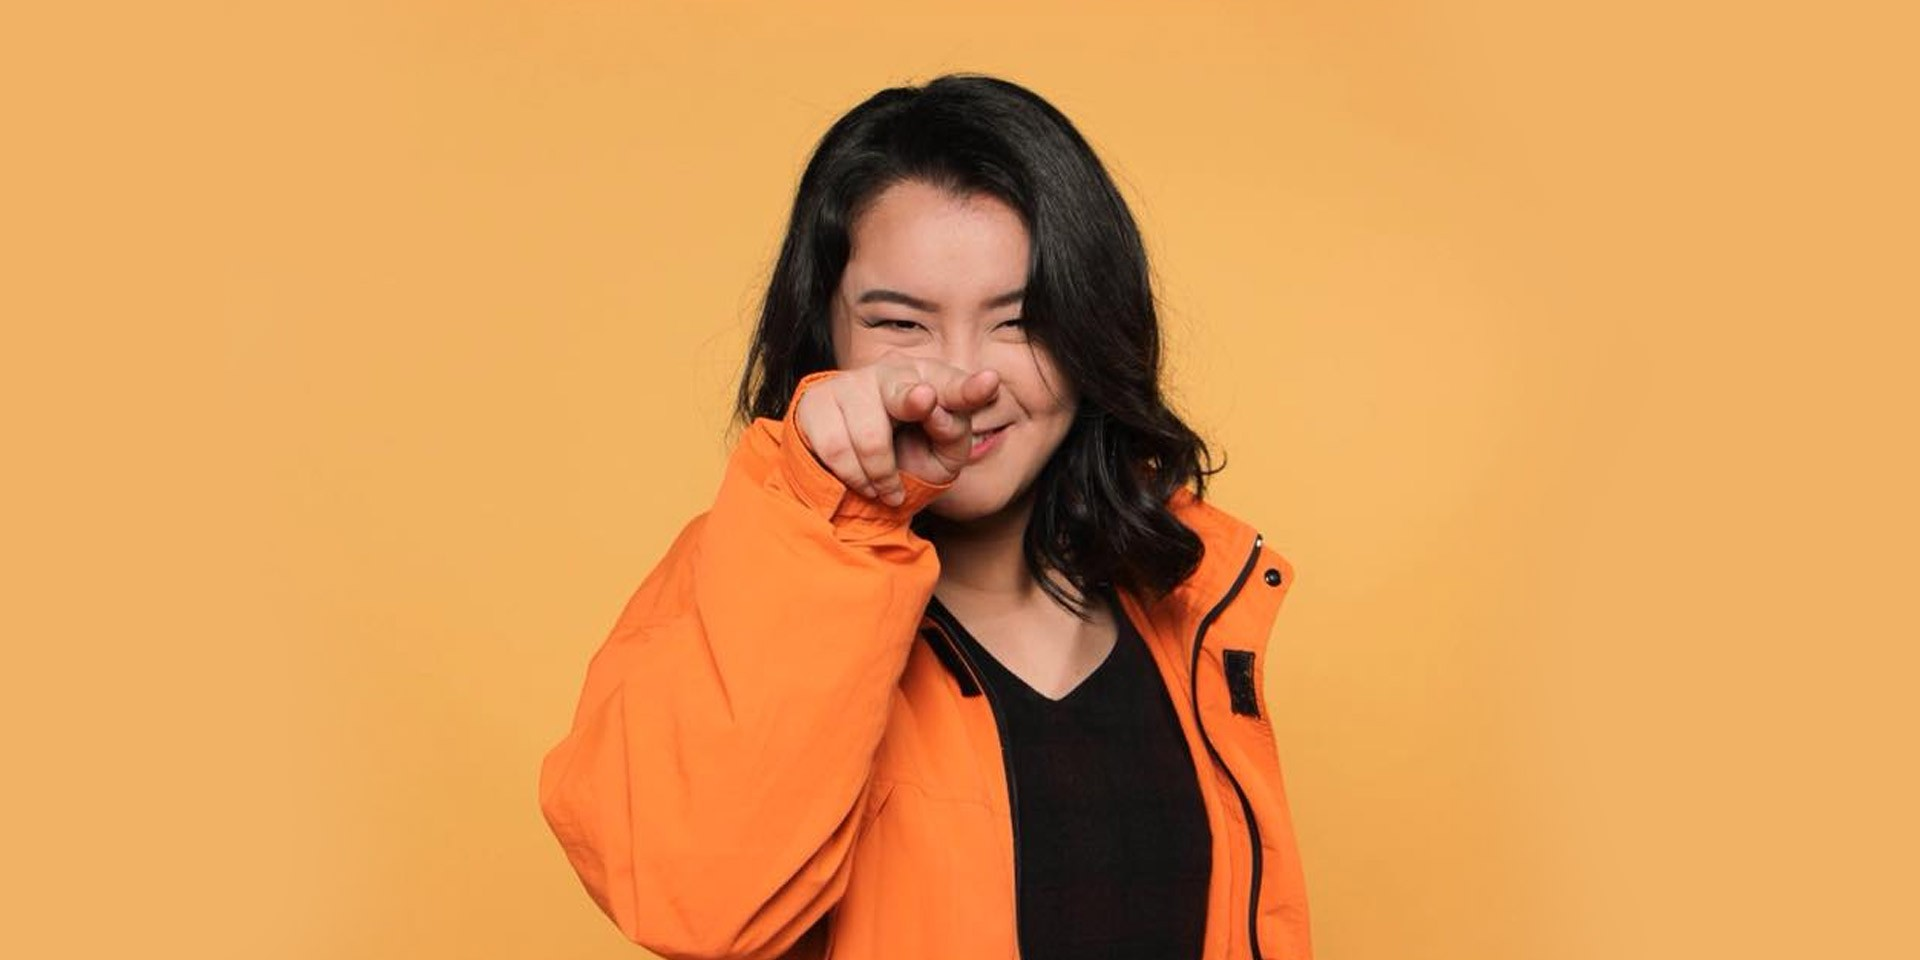 Singer-songwriter Elise Huang launches crowdfund project At Home EP